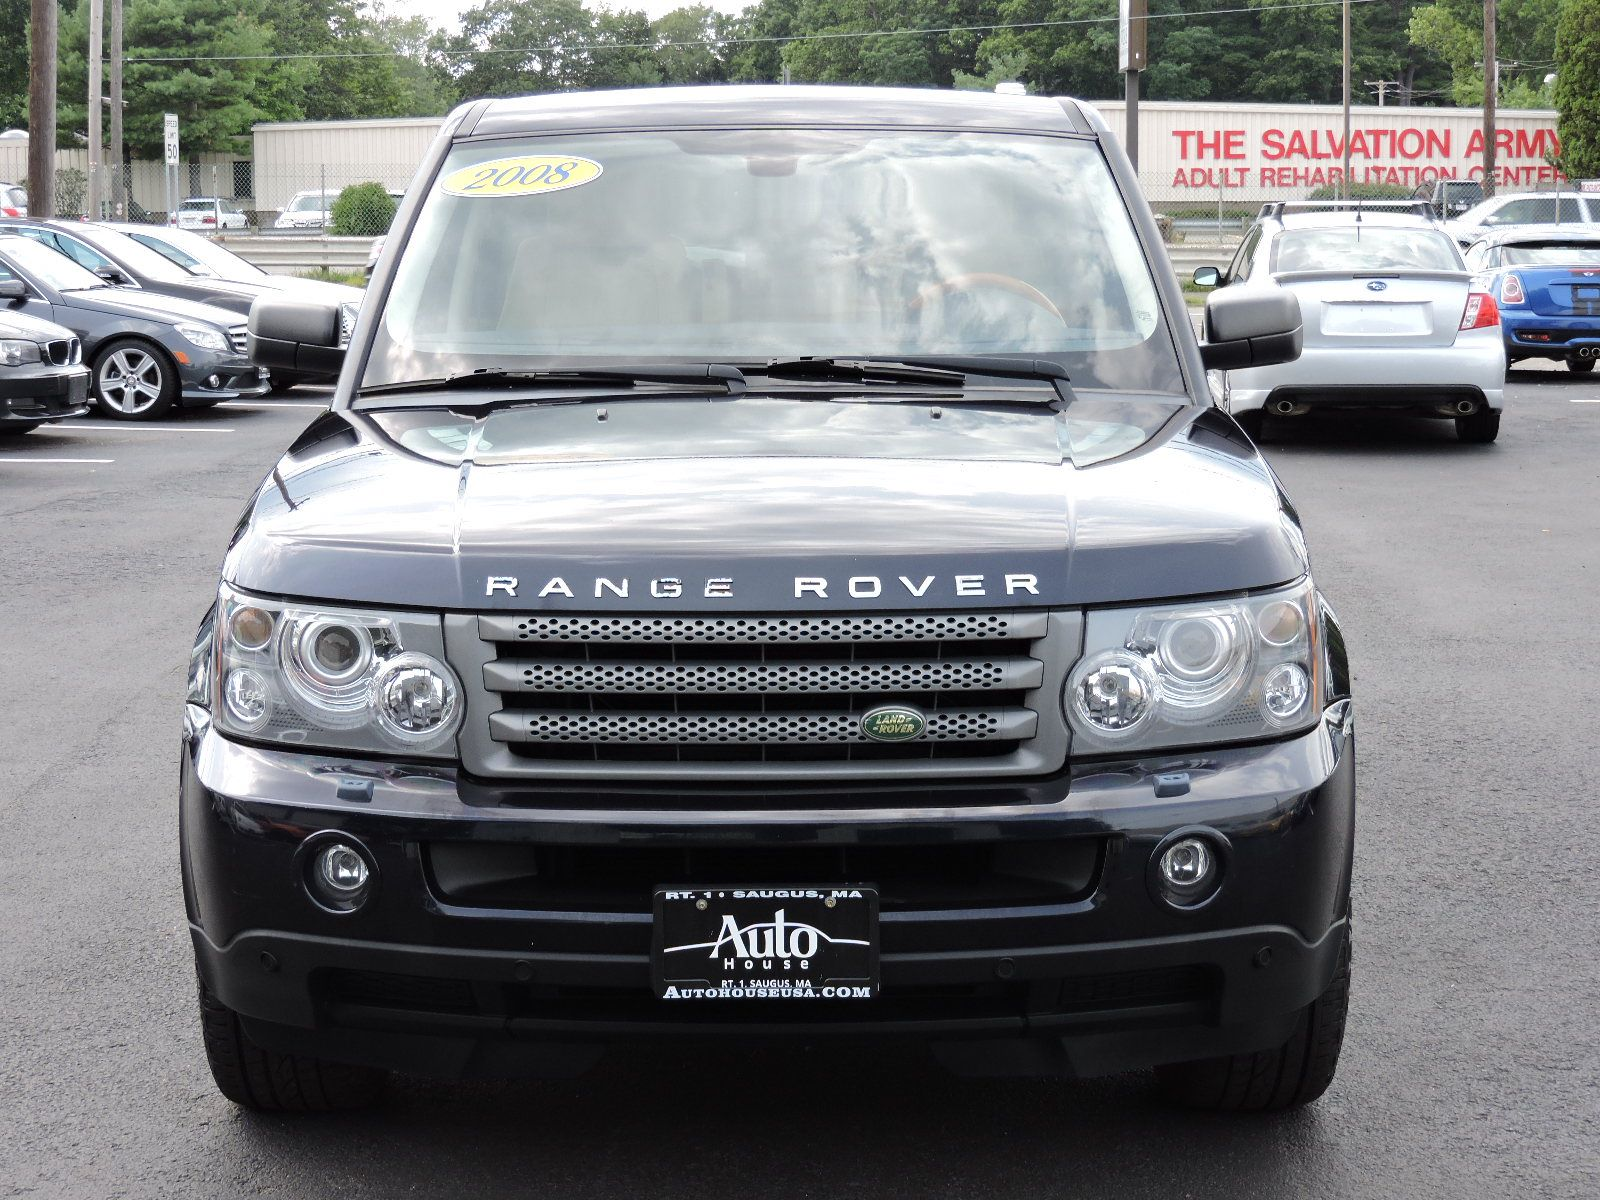 2008 Land Rover Range Rover Sport - All Wheel Drive - Navigation